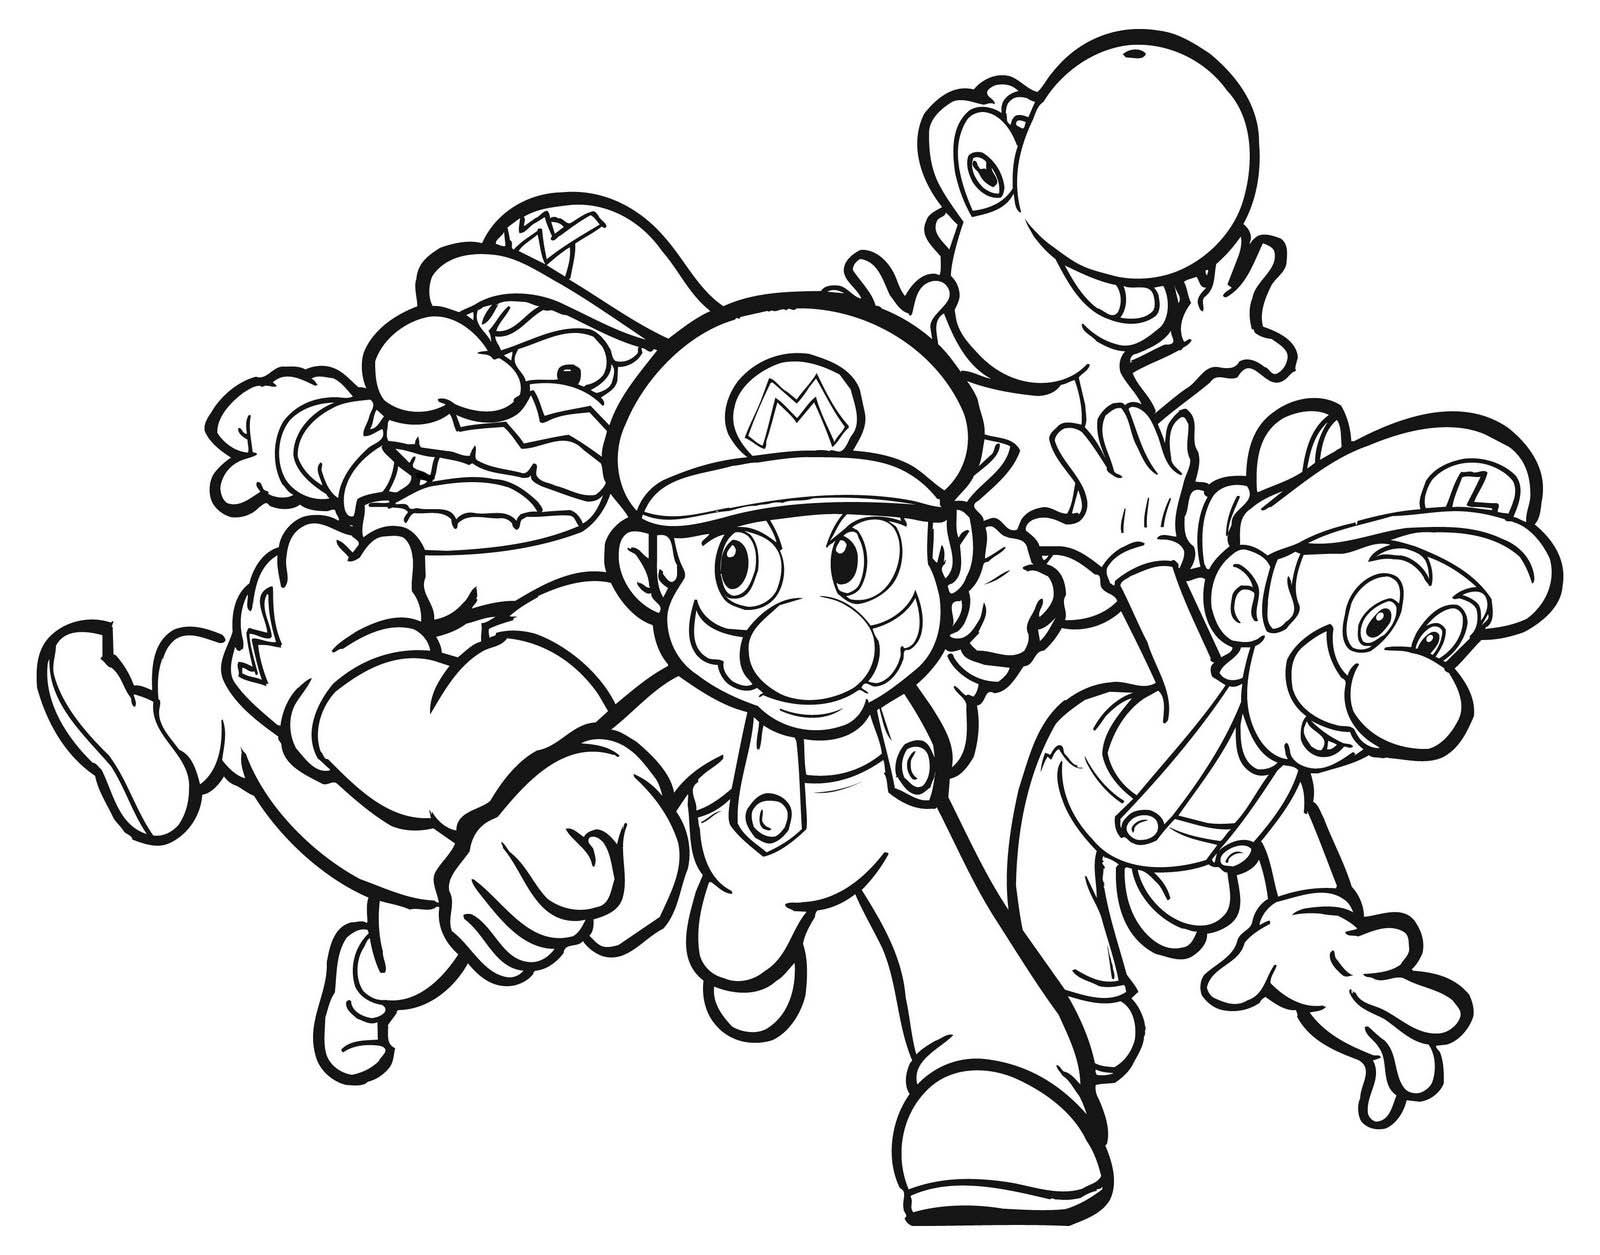 picture relating to Printable Mario Coloring Pages named Totally free Printable Mario Coloring Internet pages For Youngsters coloring